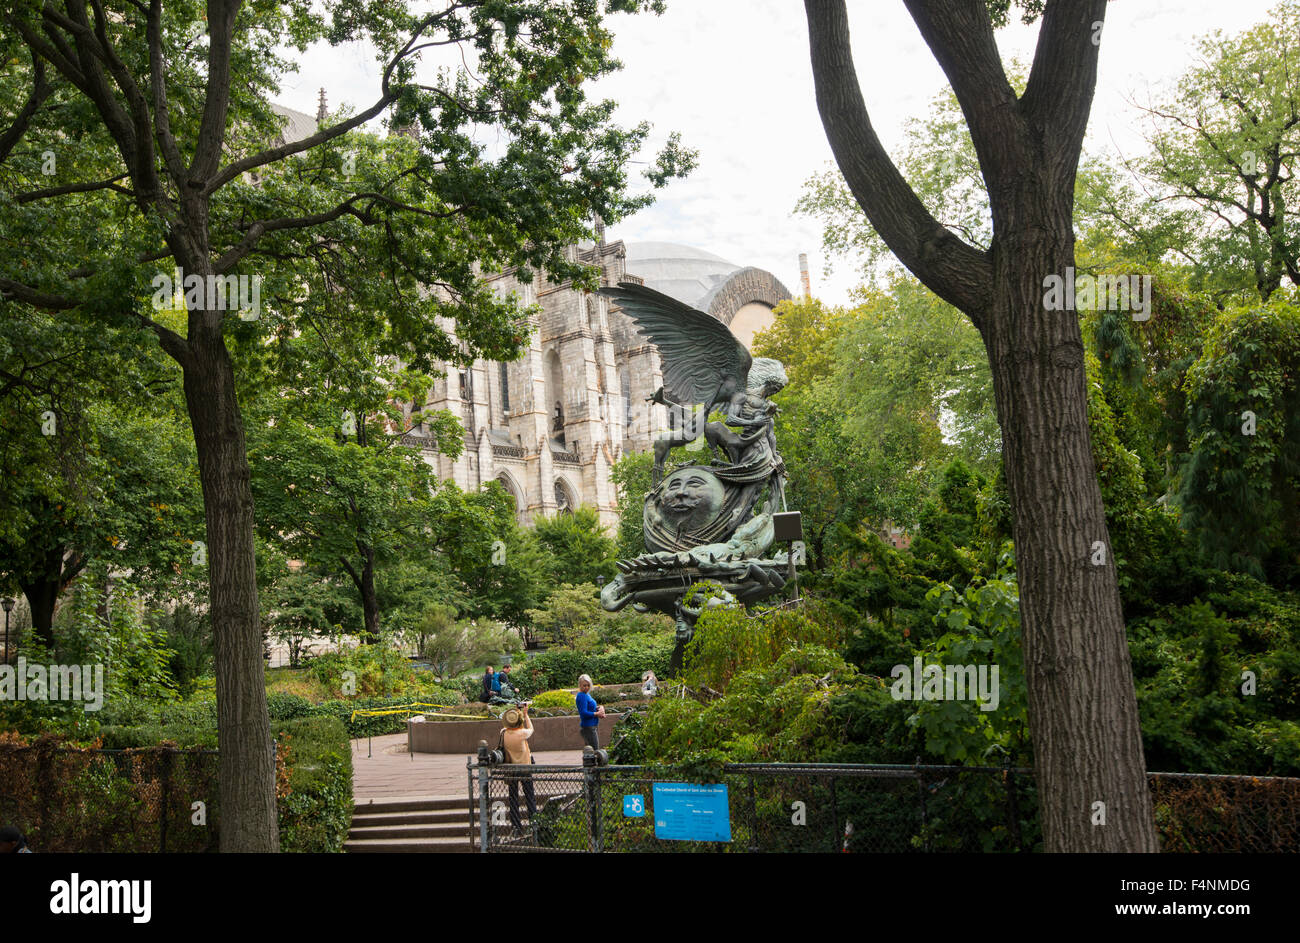 Cathedral Church of Saint John the Divine in Morningside Heights, New York City USA - Stock Image